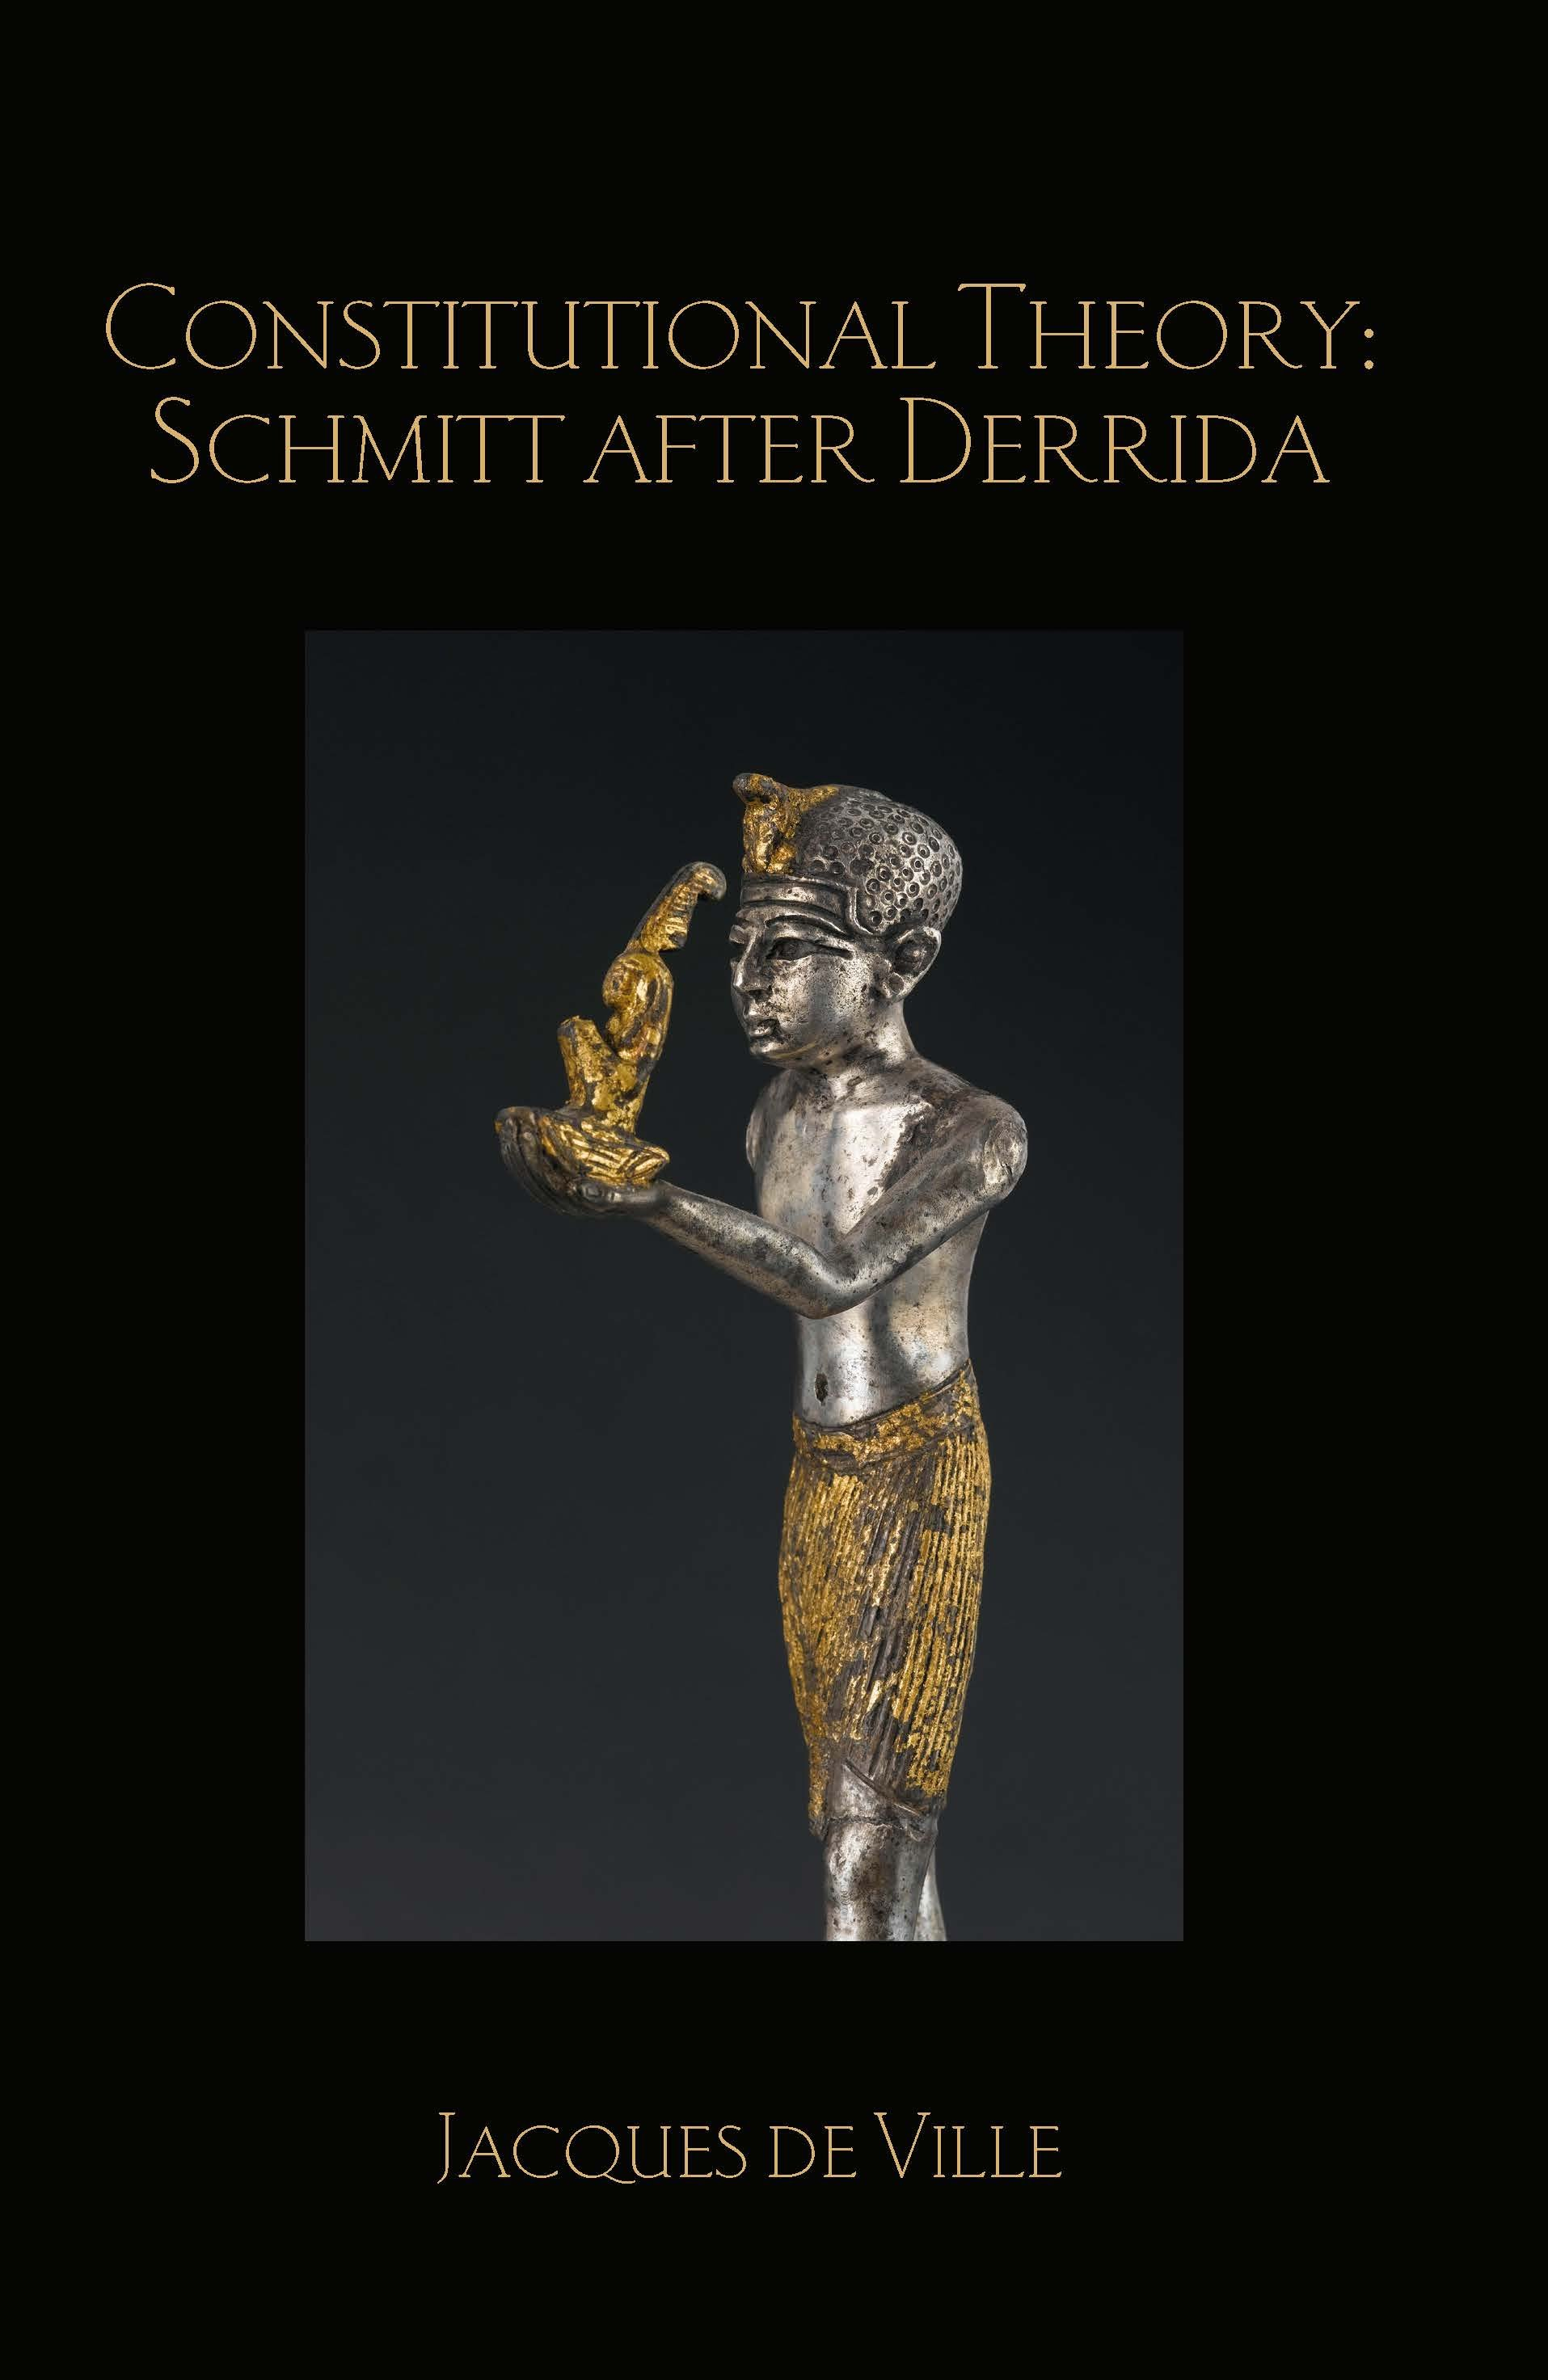 Constitutional Theory: Schmitt after Derrida book cover